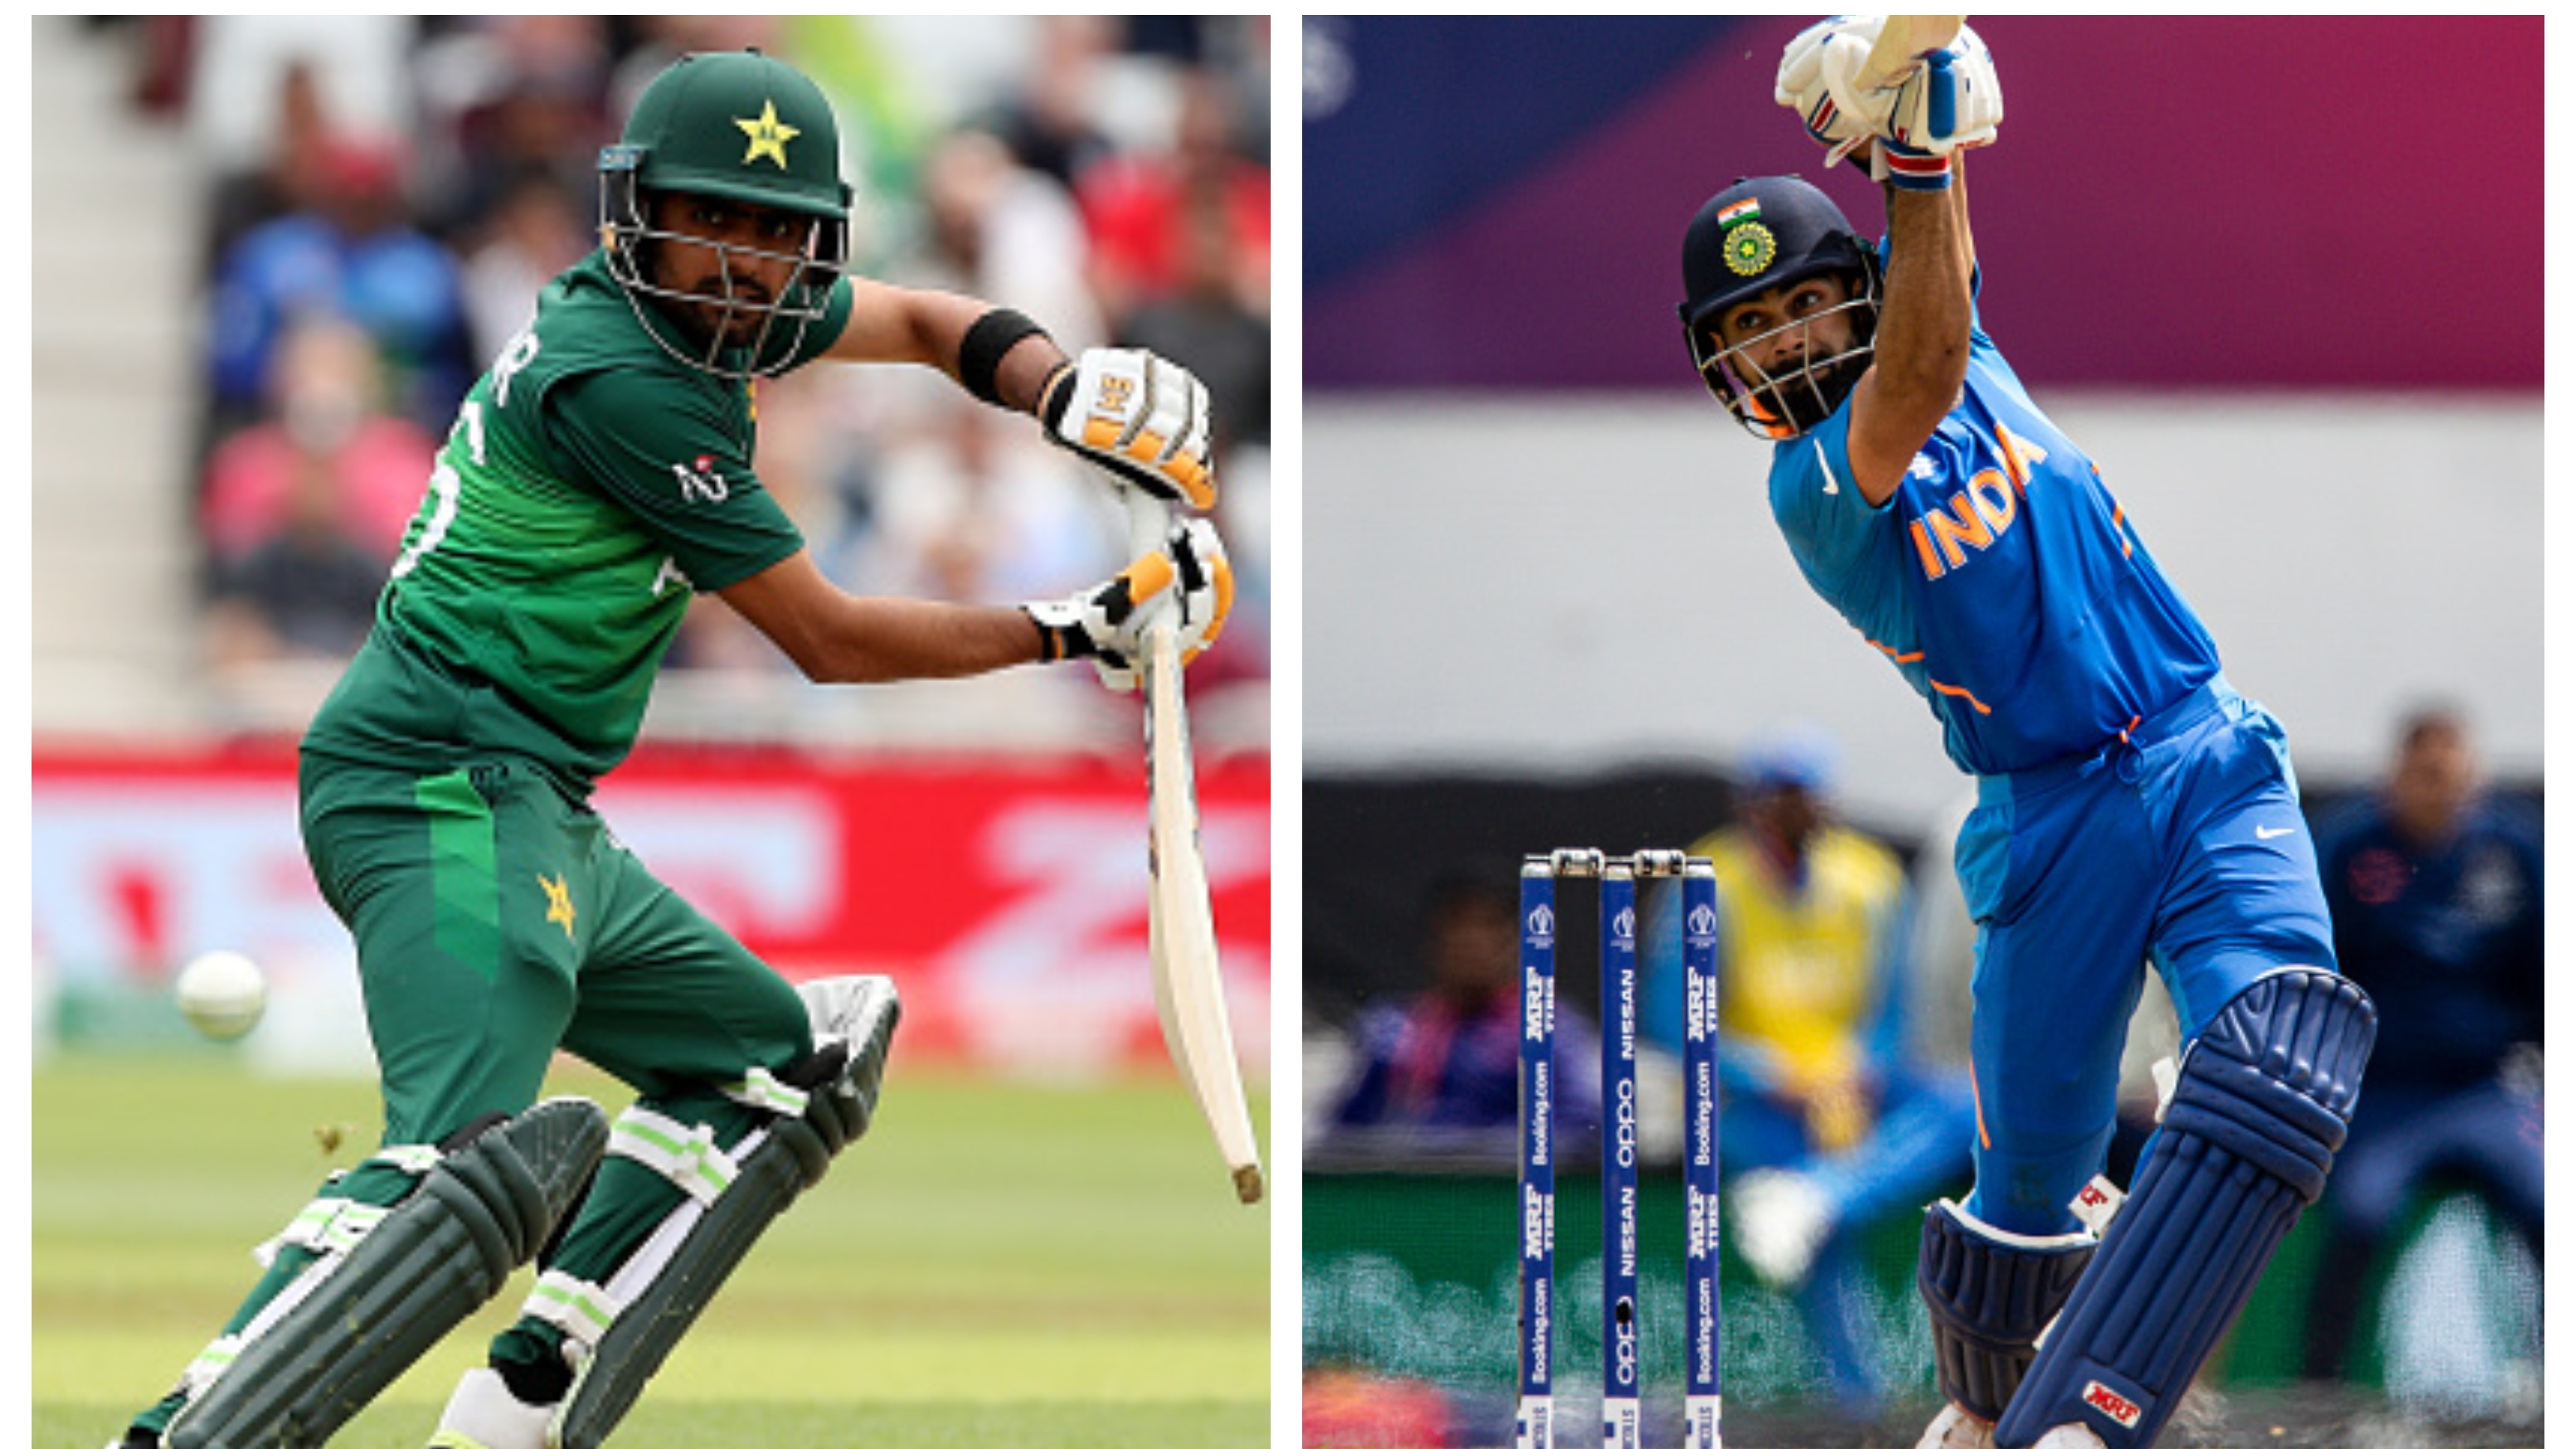 CWC 2019: Babar Azam observes Virat Kohli's game keenly to fine-tune his batting